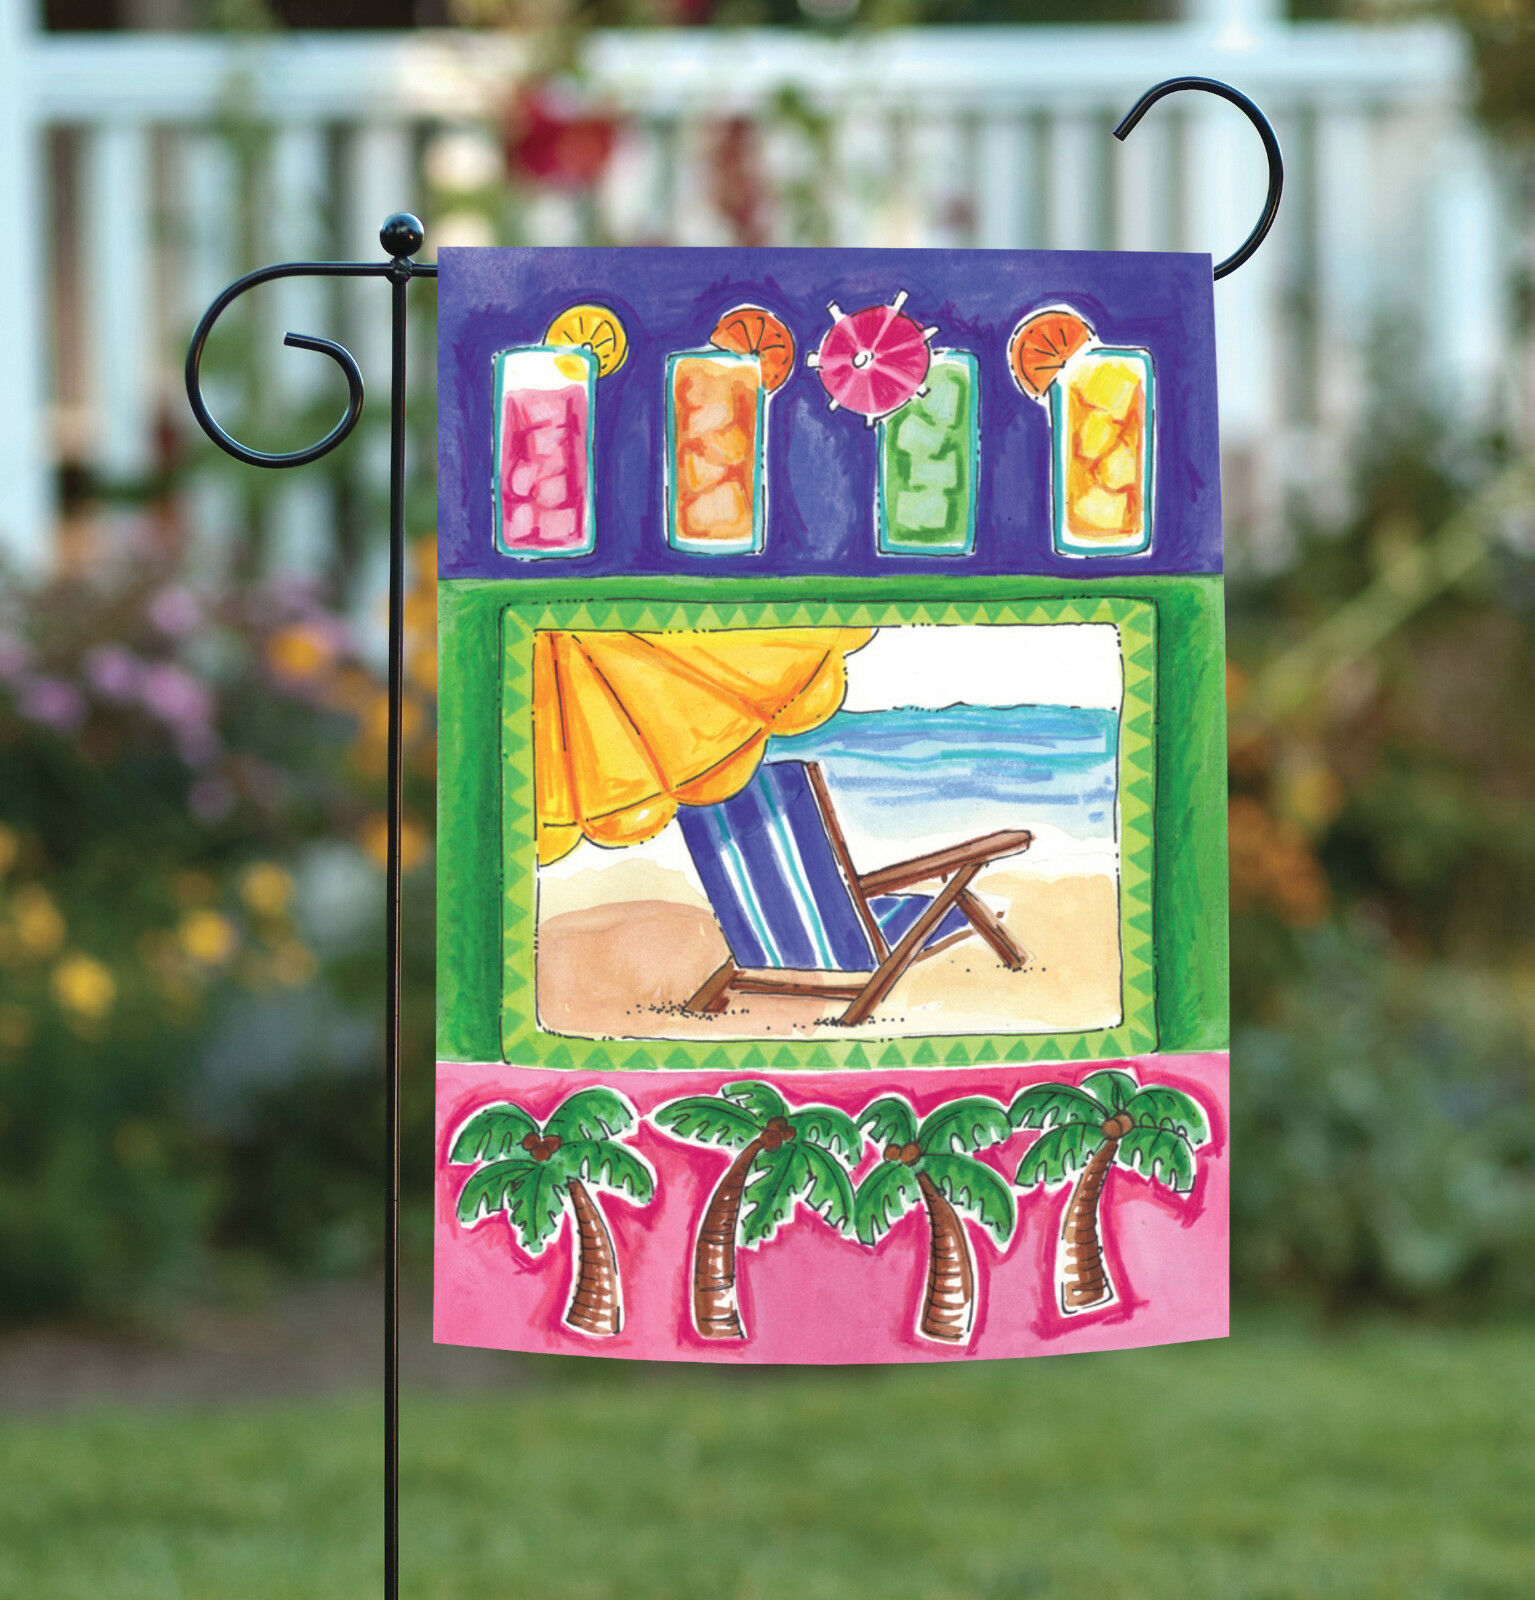 Toland Summer Fun Four Palms 12 5 X 18 Colorful Cocktail Beach Garden Flag For Sale Online